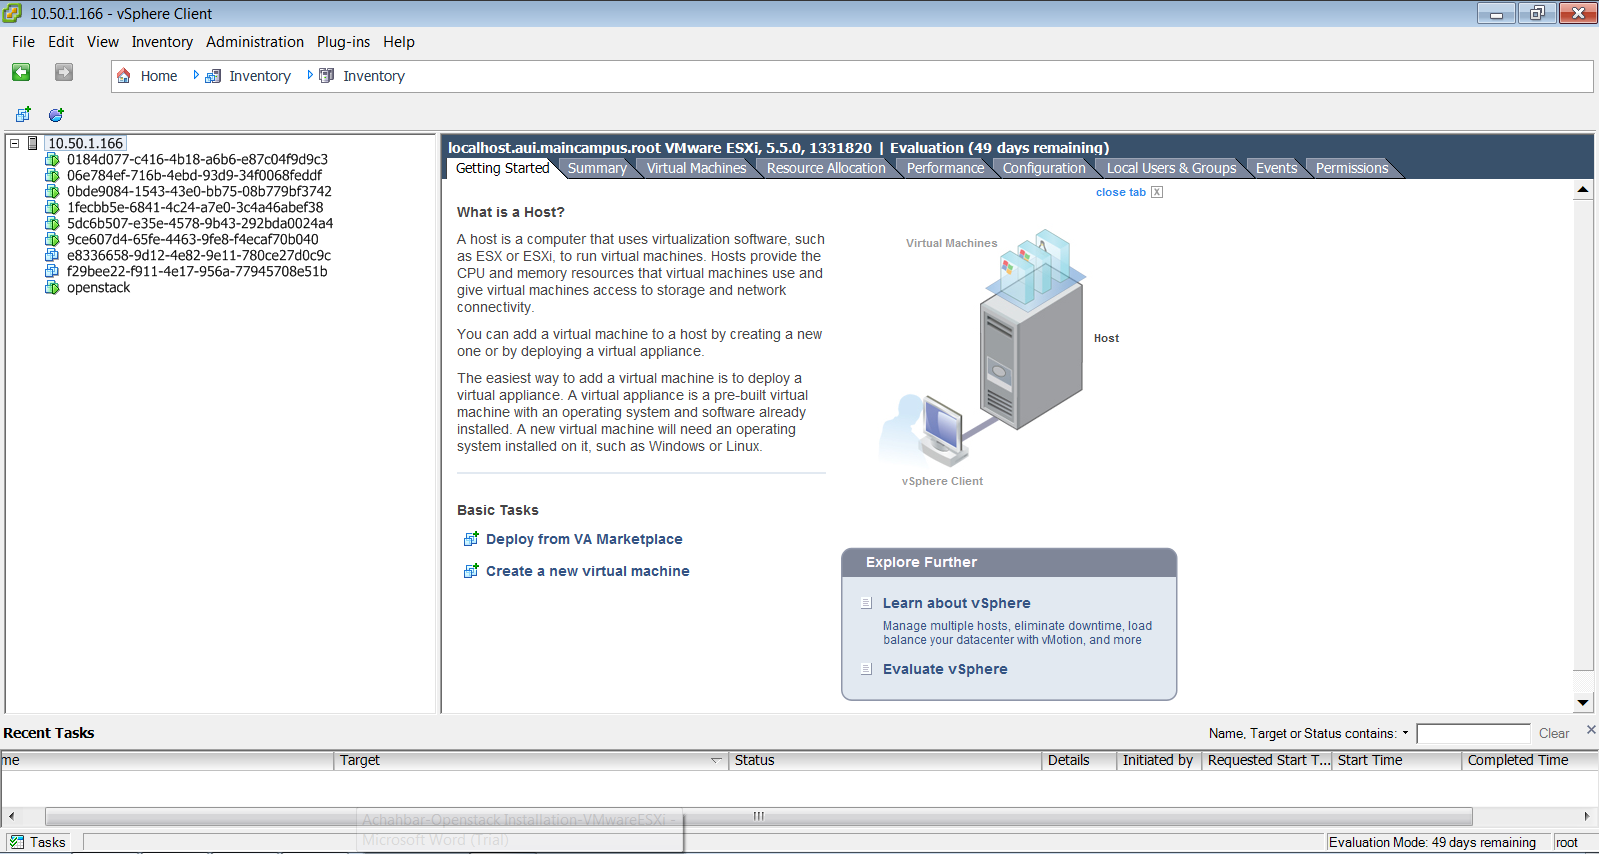 Figure 3: access to VMs (OpenStack instances) through vsphere Client interface References http://docs.openstack.